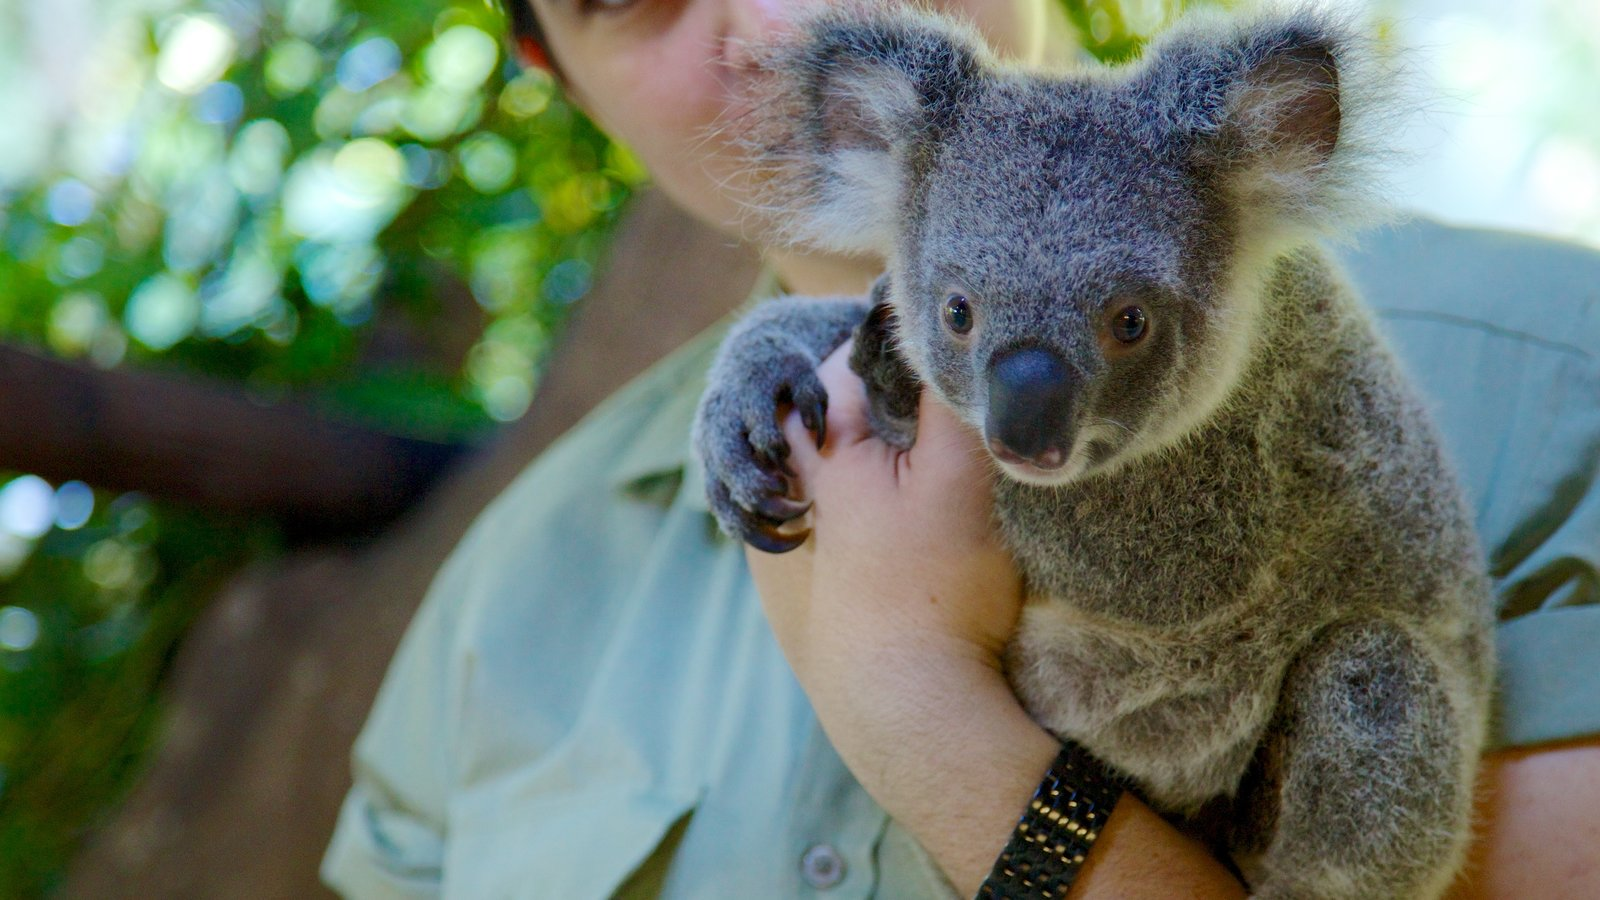 Cairns Tropical Zoo showing zoo animals and cuddly or friendly animals